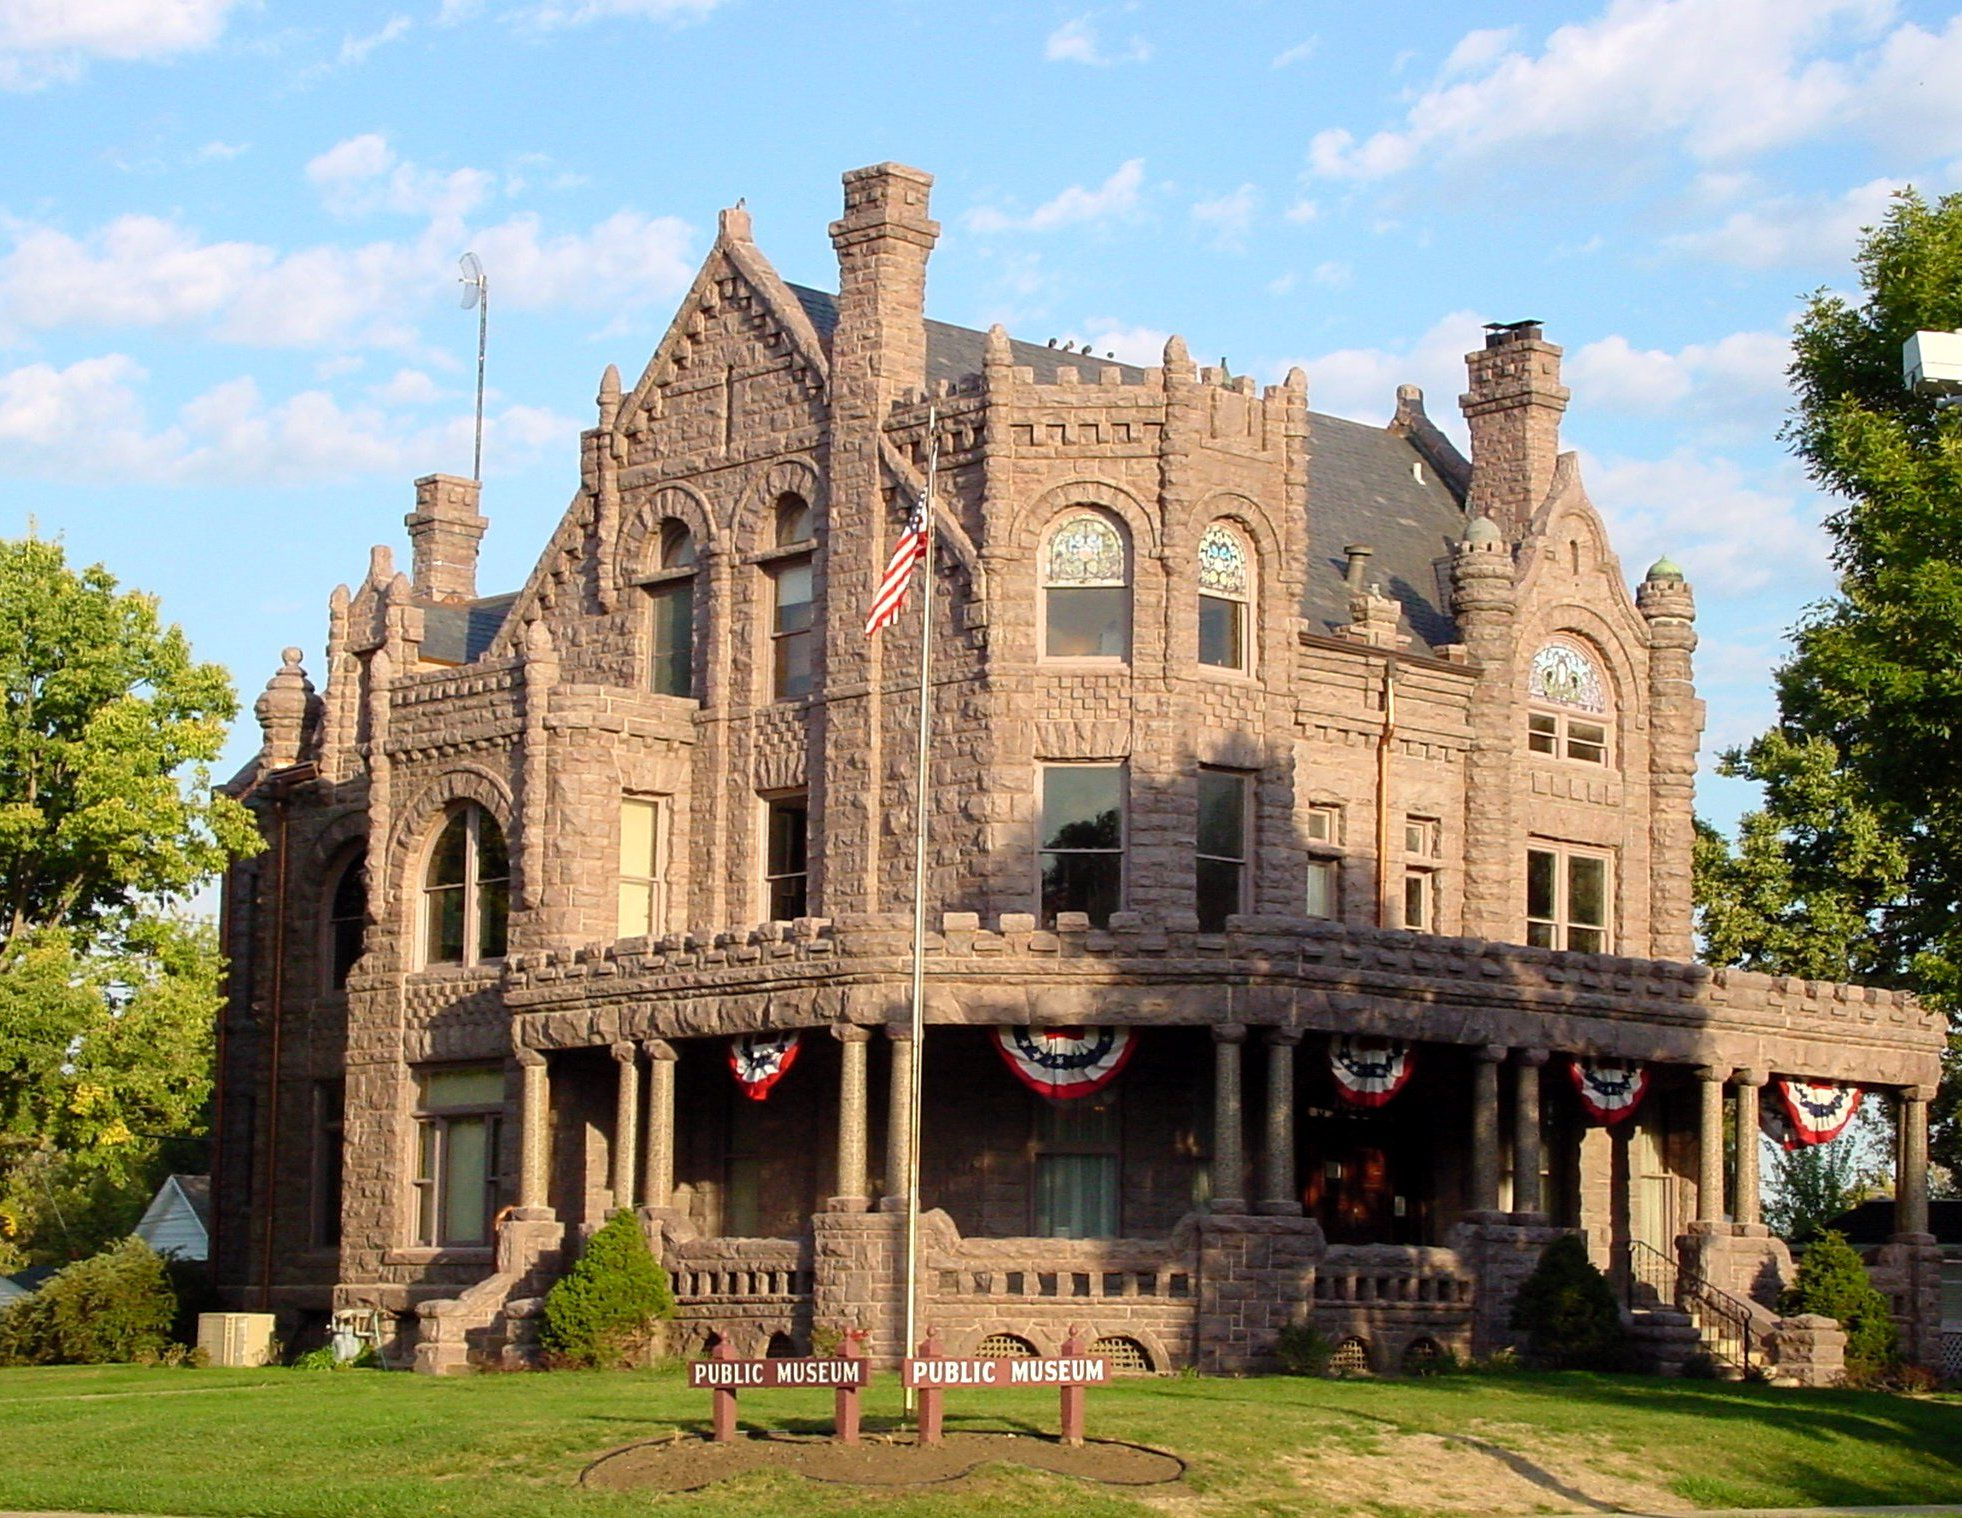 The John Pierce Mansion In Sioux City Iowa Served As The Sioux City Museum For Many Years Sioux City Iowa Iowa Travel Iowa Road Trip